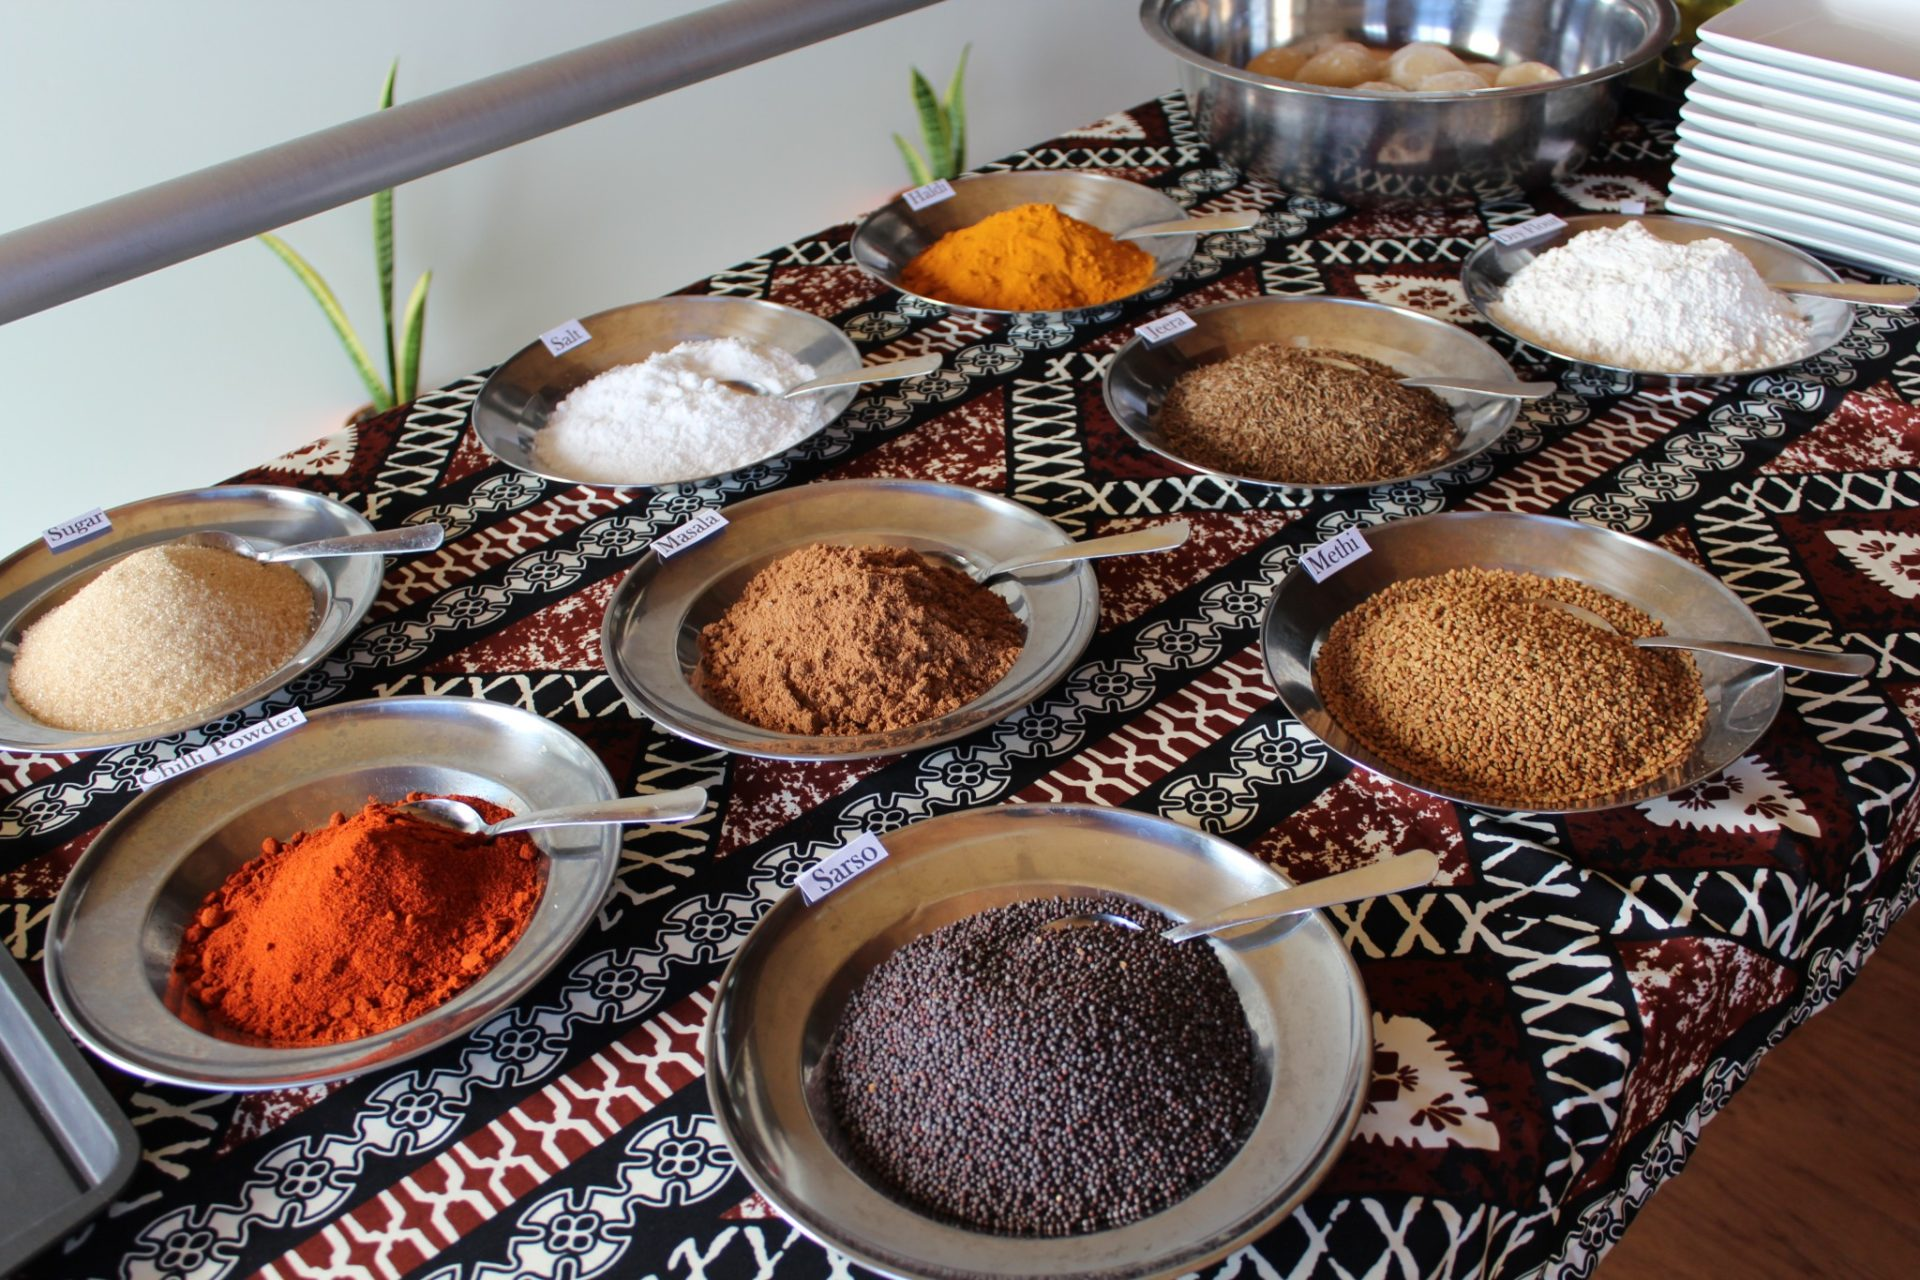 Fijian cooking school offers flavorful lessons kokoda recipe included indian spices ingredients in fijian cuisine forumfinder Gallery